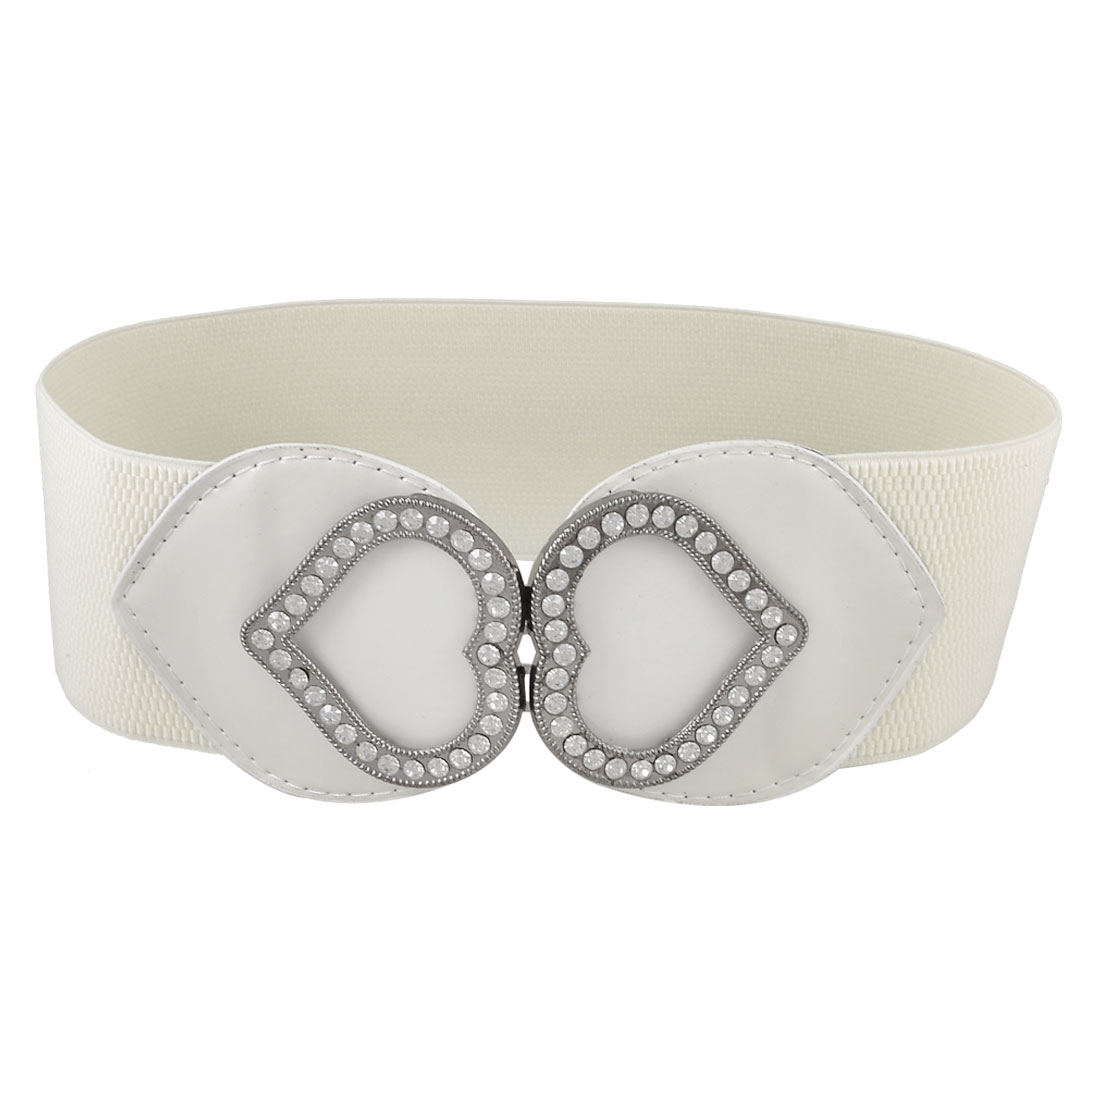 "Lady Metal Heart Shape Interlocking Buckle 3"" Width Elastic Waist Belt White"